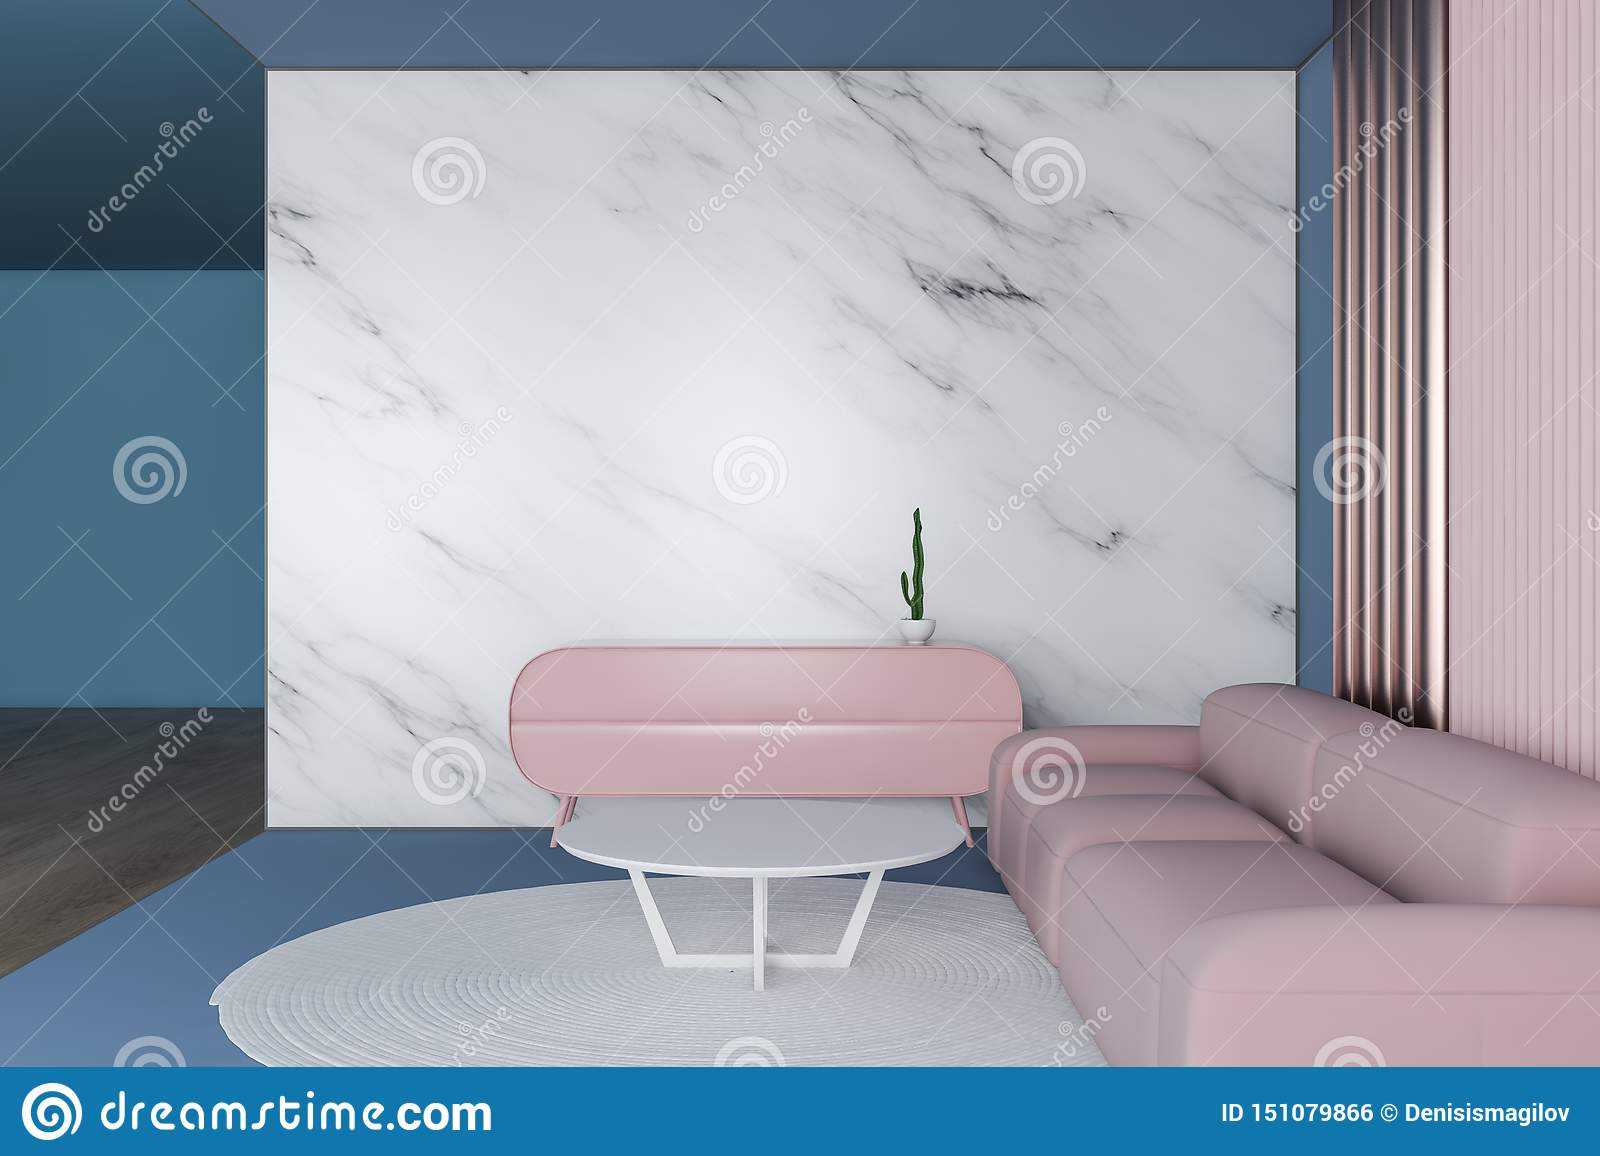 Blue Marble And Pink Living Room Stock Illustration Illustration Of House Copy 151079866